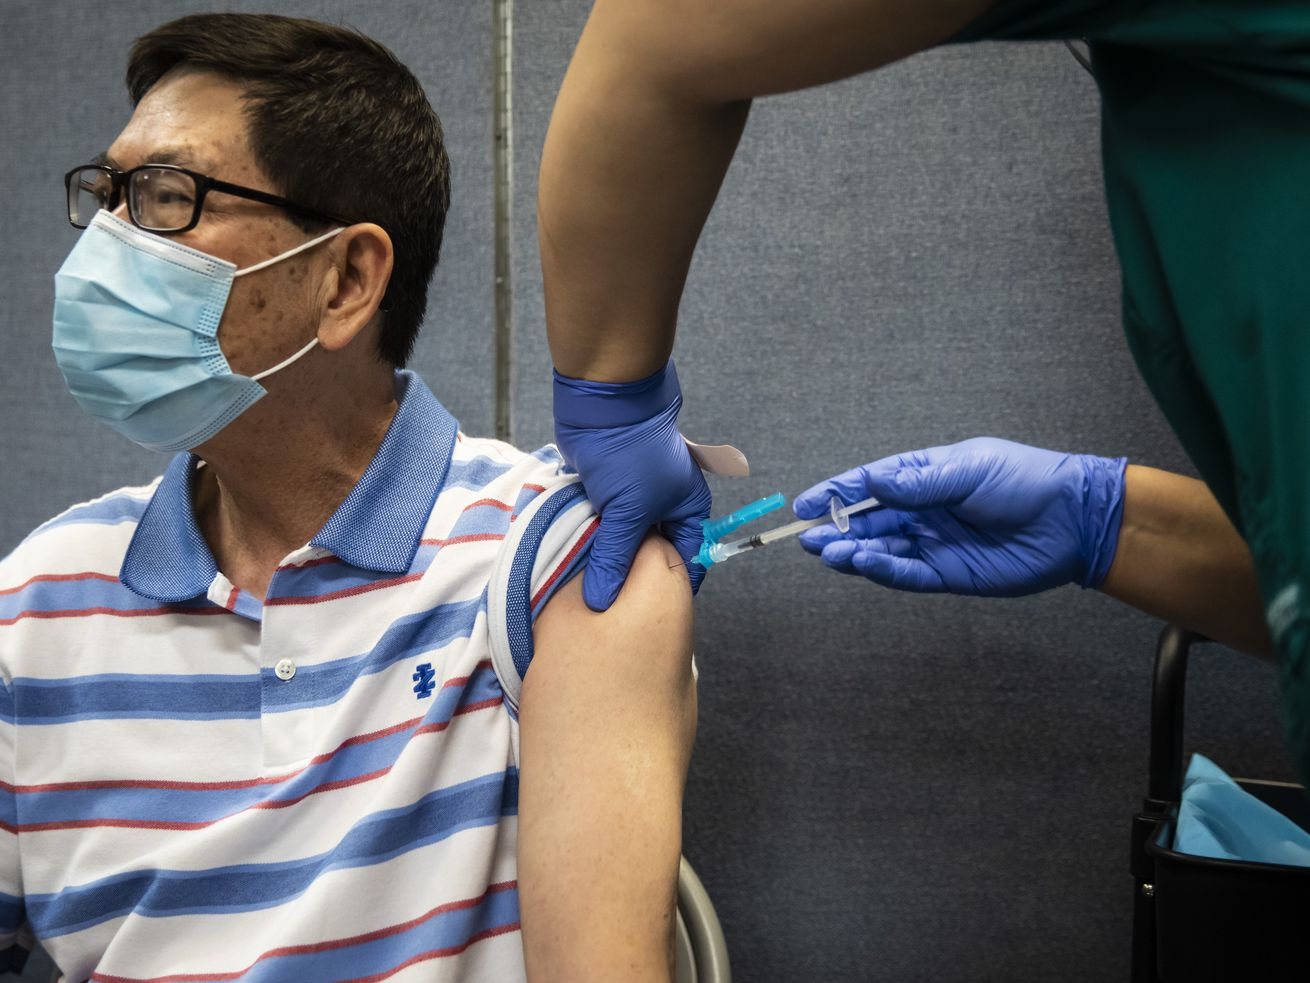 A person receives a COVID-19 vaccine earlier this summer in Chinatown. Infections are at a four-month high across Illinois.